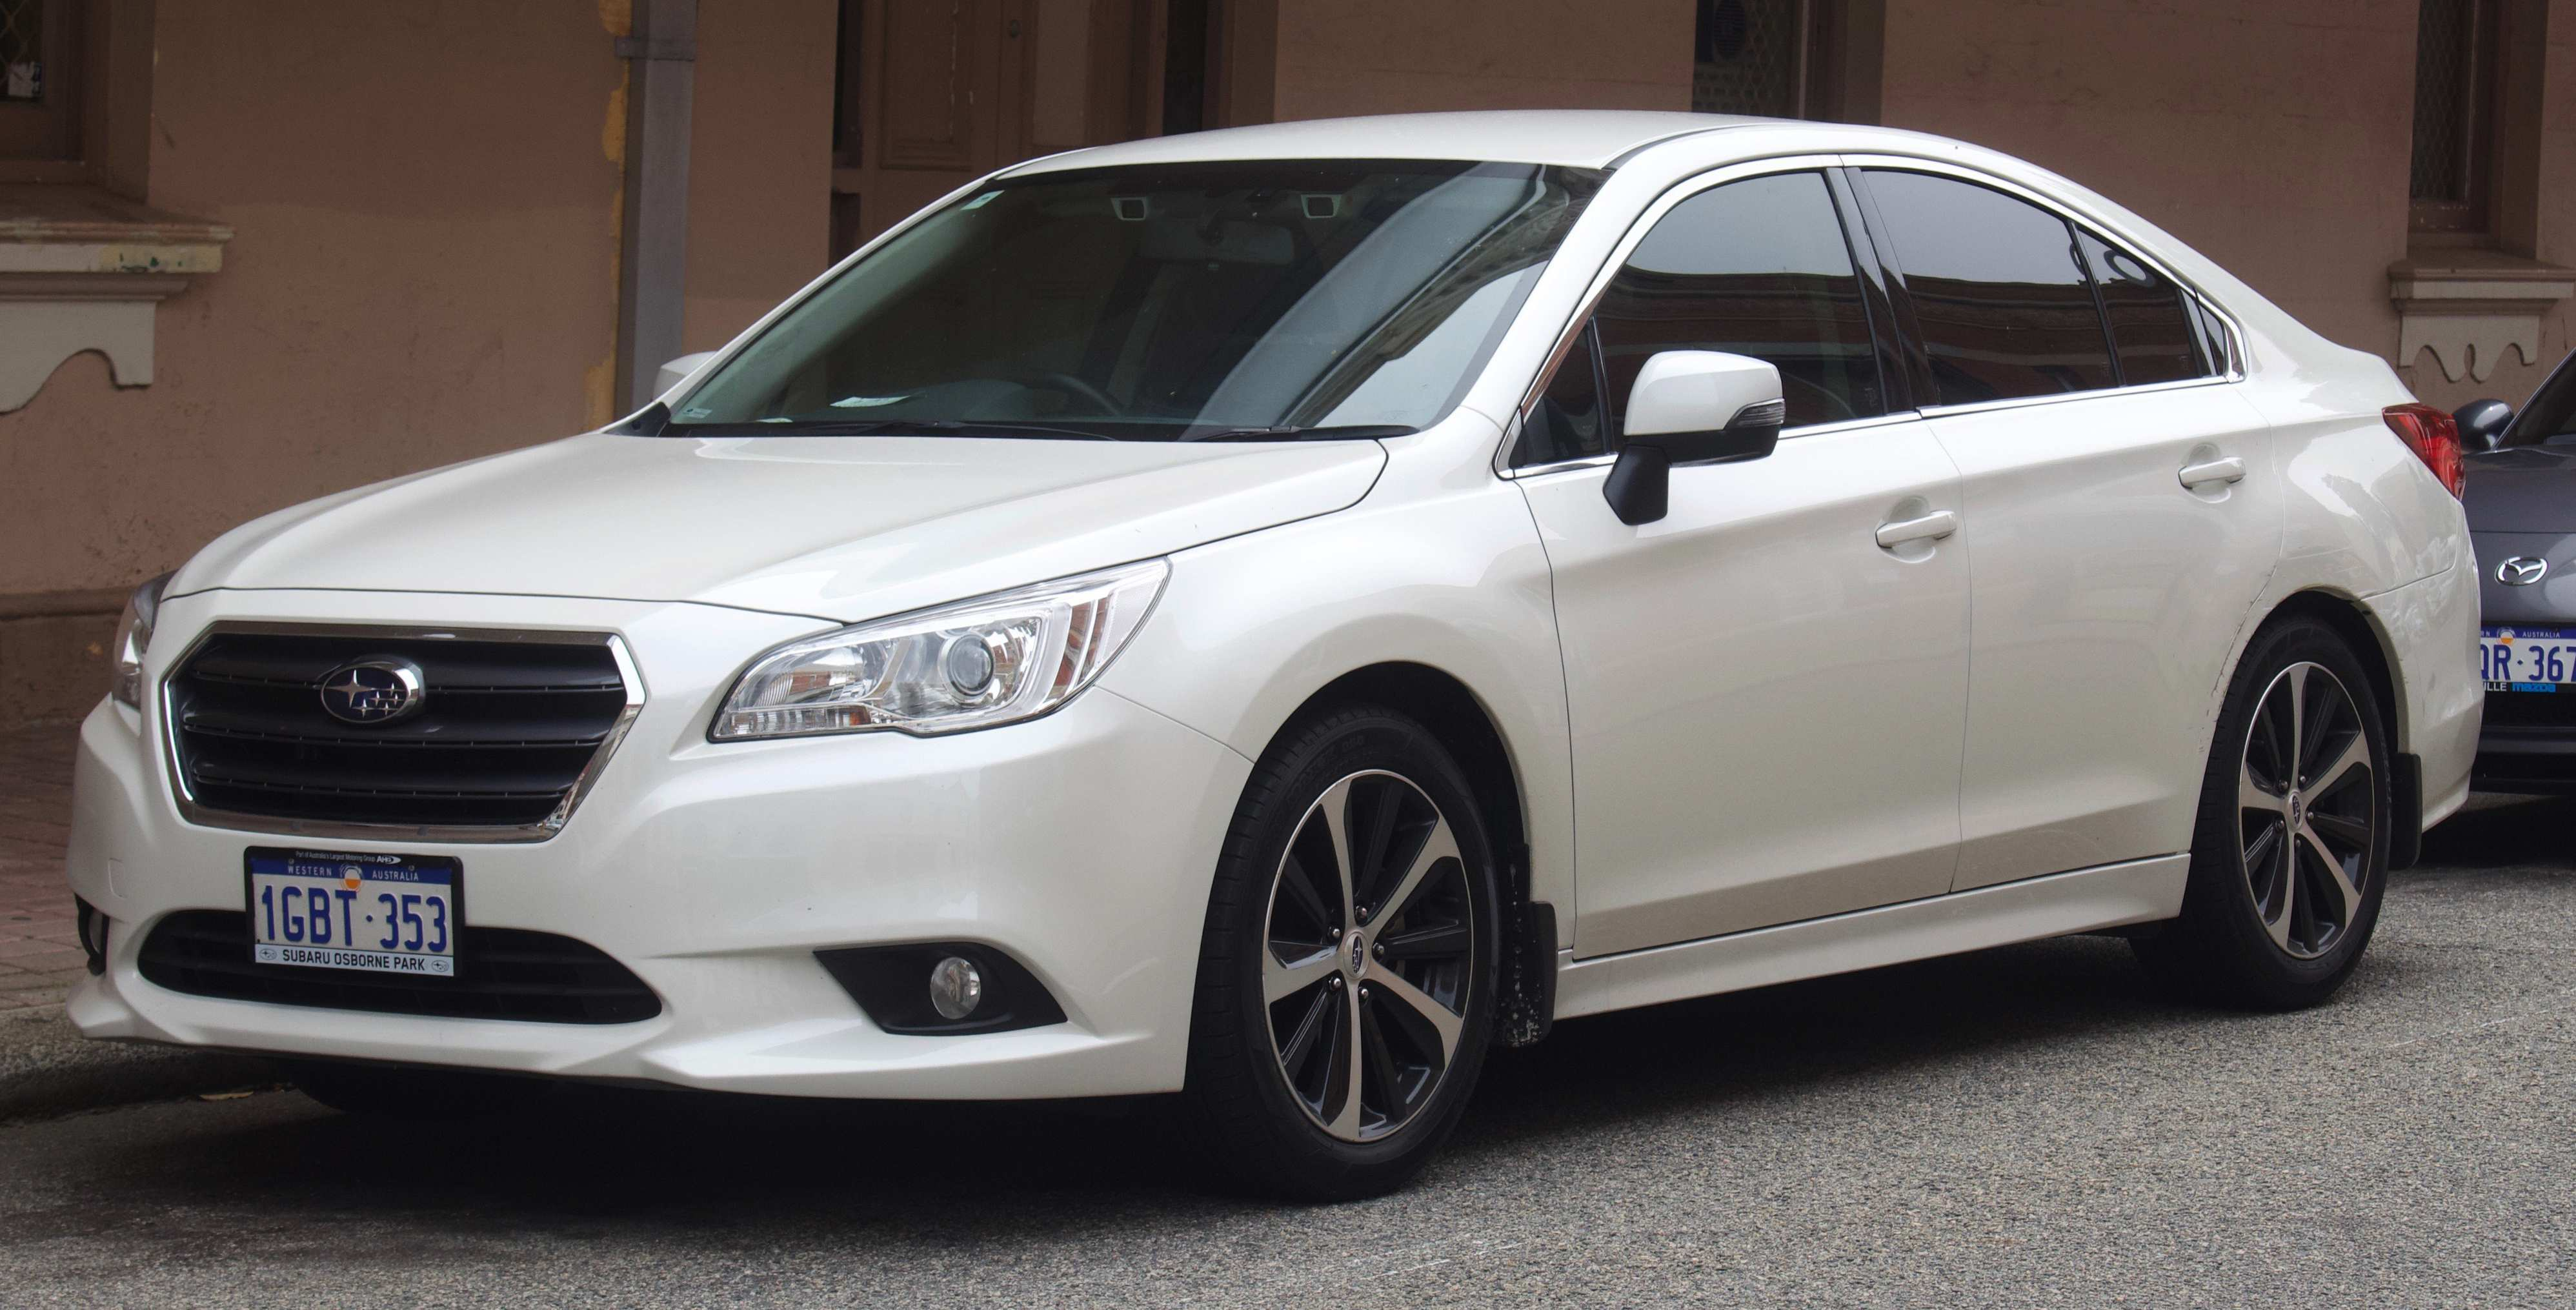 52 Best Review Subaru Legacy 2020 Japan Rumors by Subaru Legacy 2020 Japan